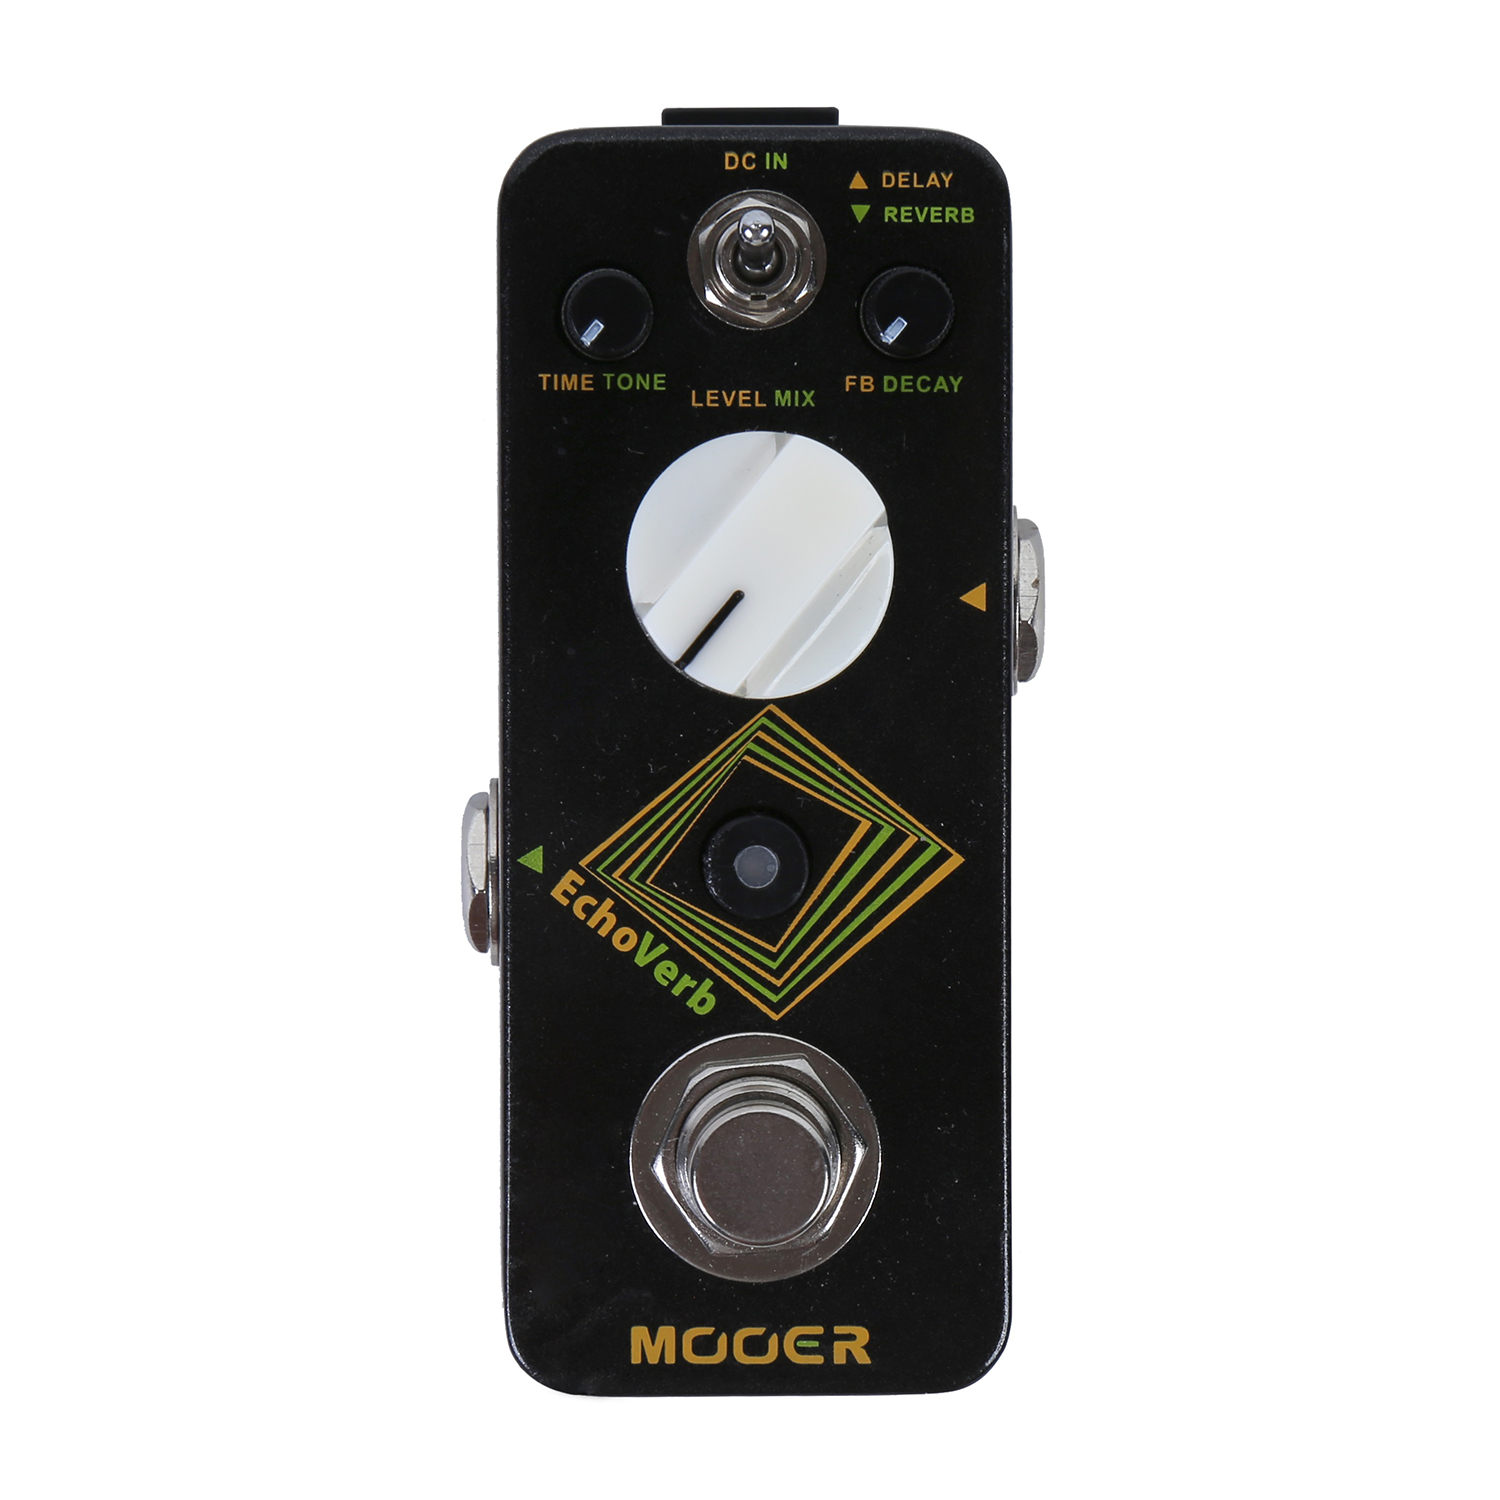 Mooer Echoverb Pedal Delay Reverb Electric Guitar Effect Time Feedback Level Delay Tone Dcay Mix Reverb Digital MRV4 педаль reverb delay tc electronic flashback delay